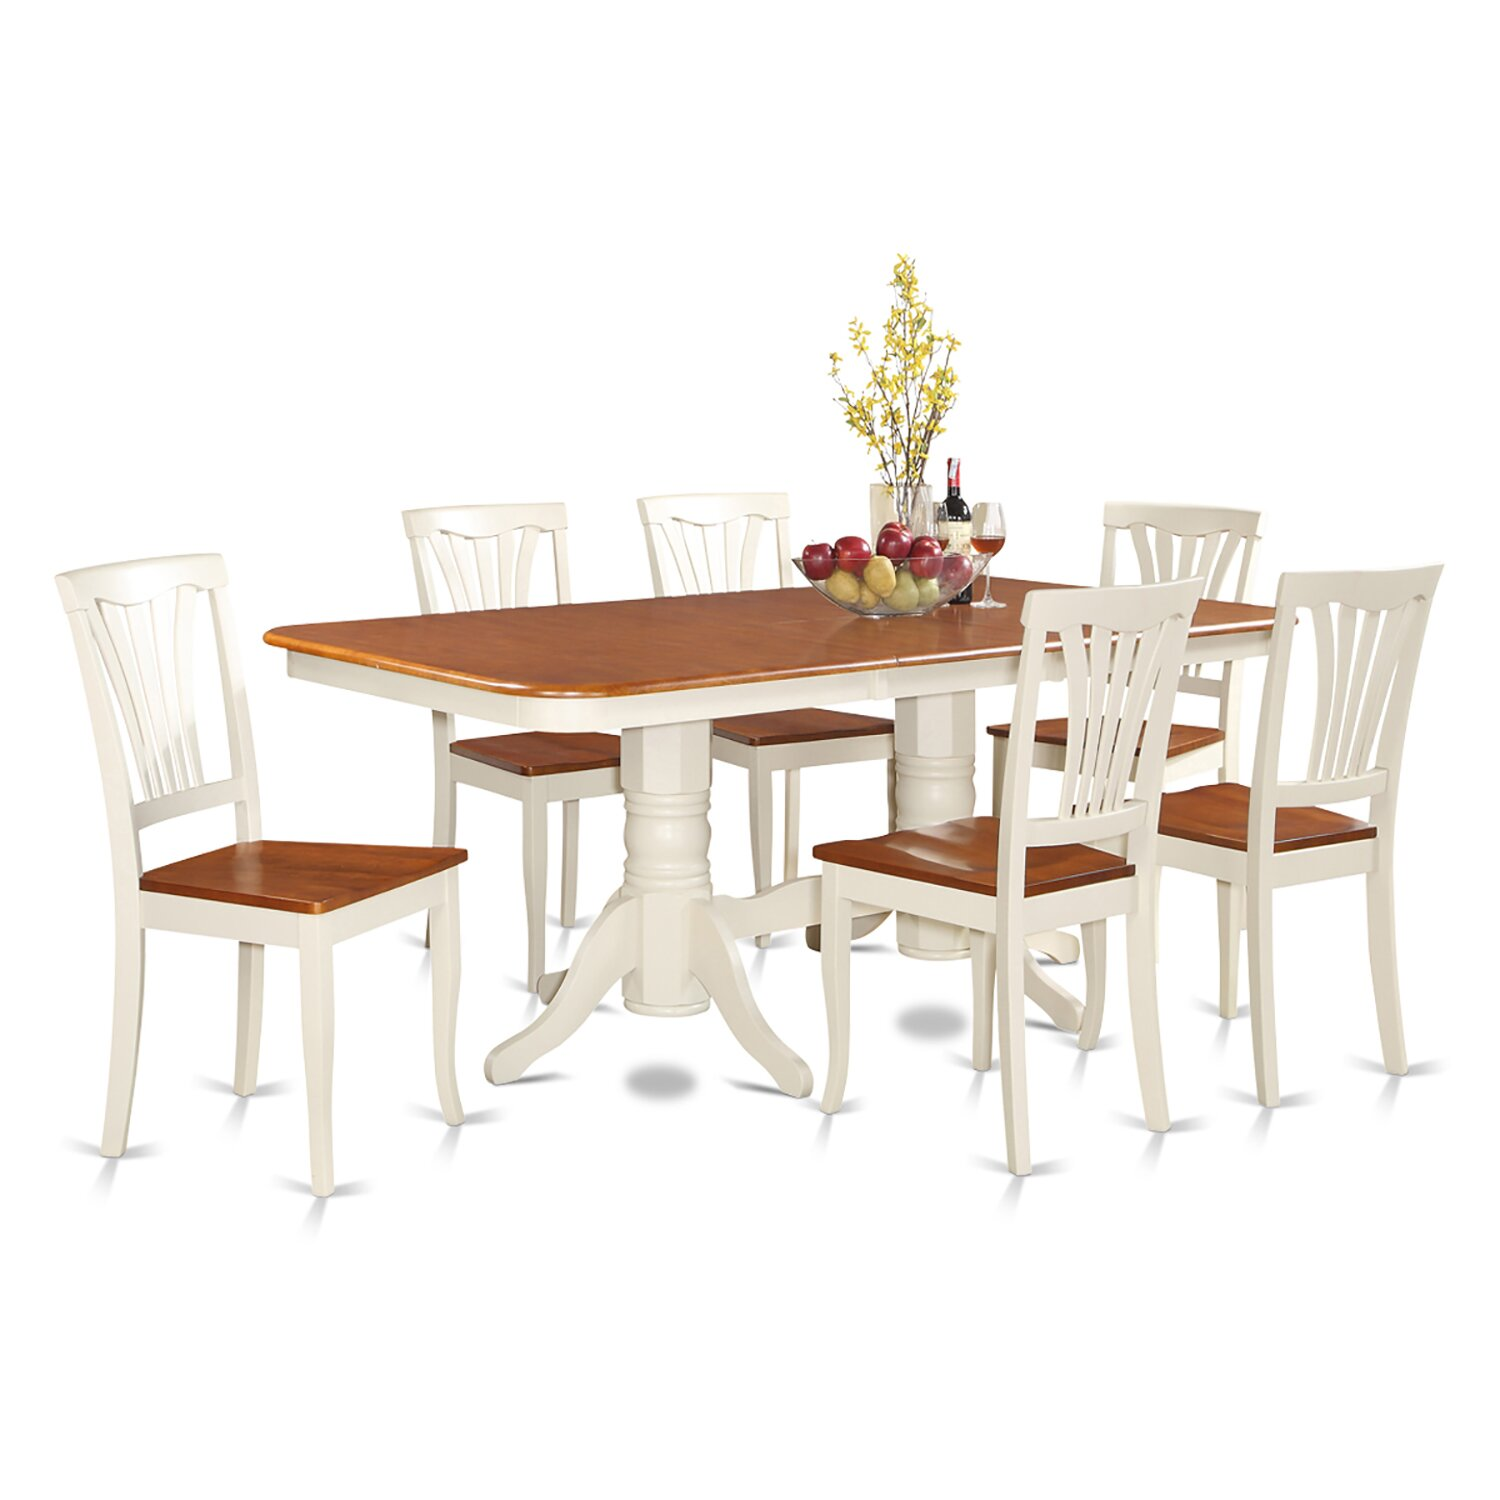 7 PC Dining Room Set Dining Table with a Leaf and 6 Dining Room Chairs NAAV7 WHI W WOIM